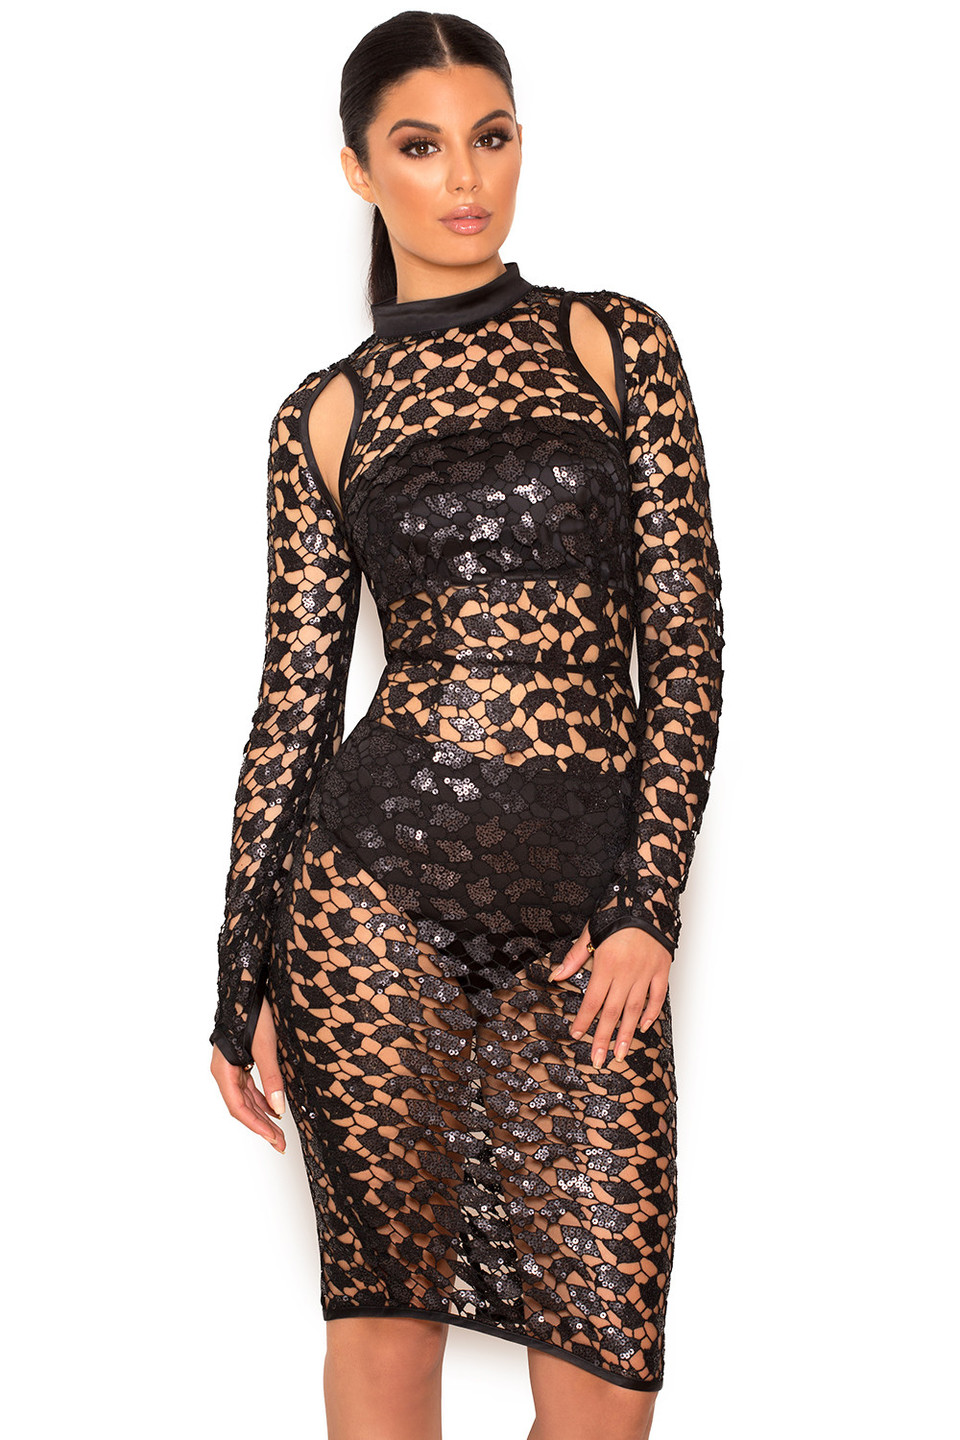 Aleera Black SpiderWeb Sequin Cut Out Dress